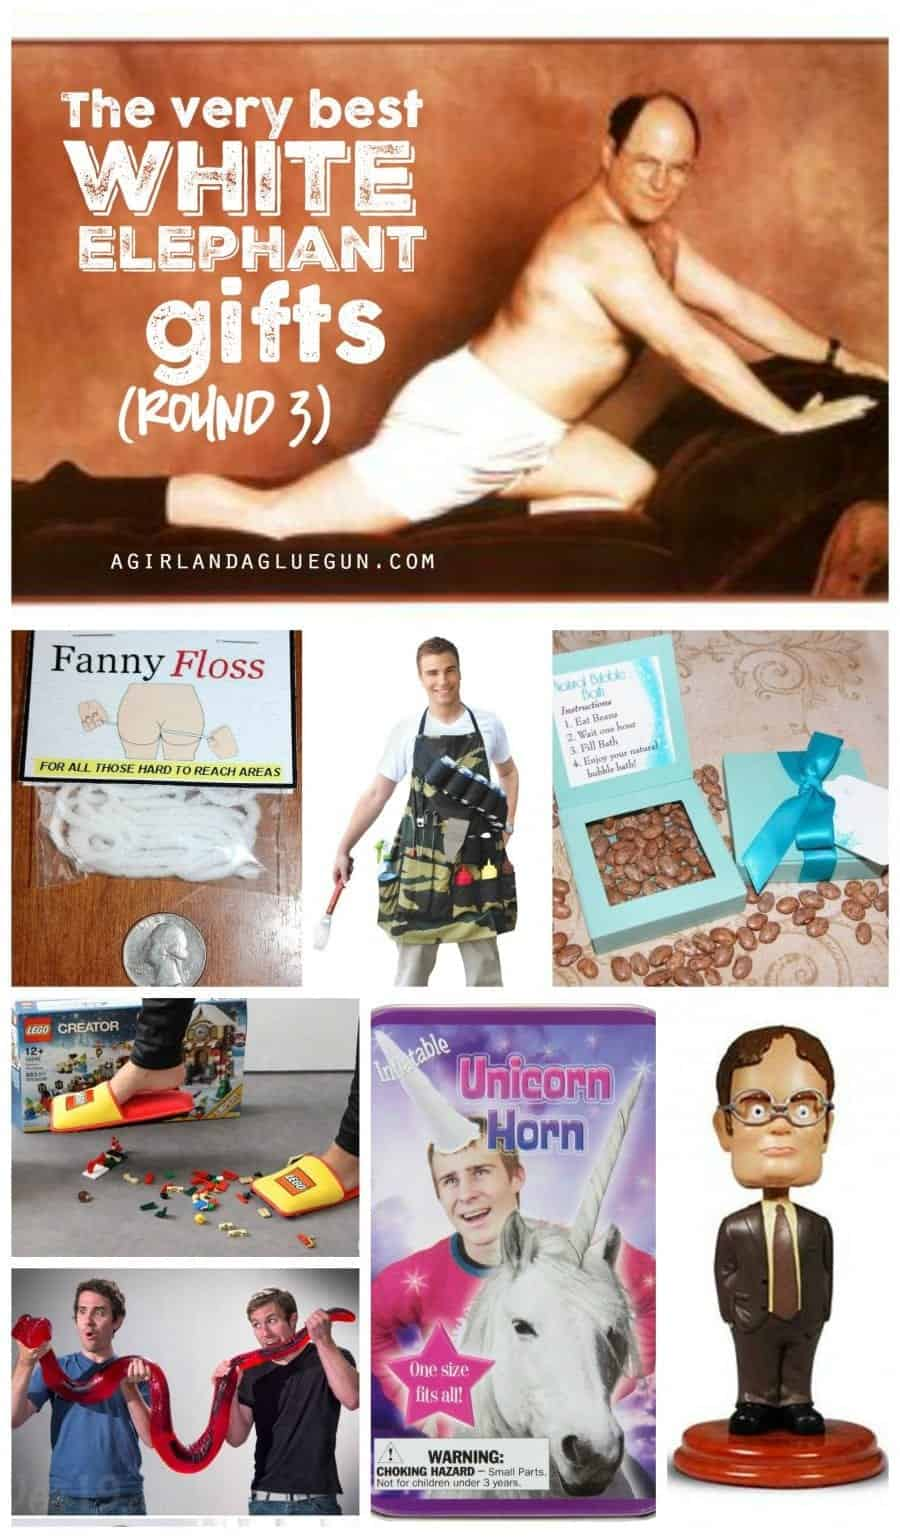 the-very-best-white-elephant-gifts-roundup-so-many-funny-ideas-900x1538